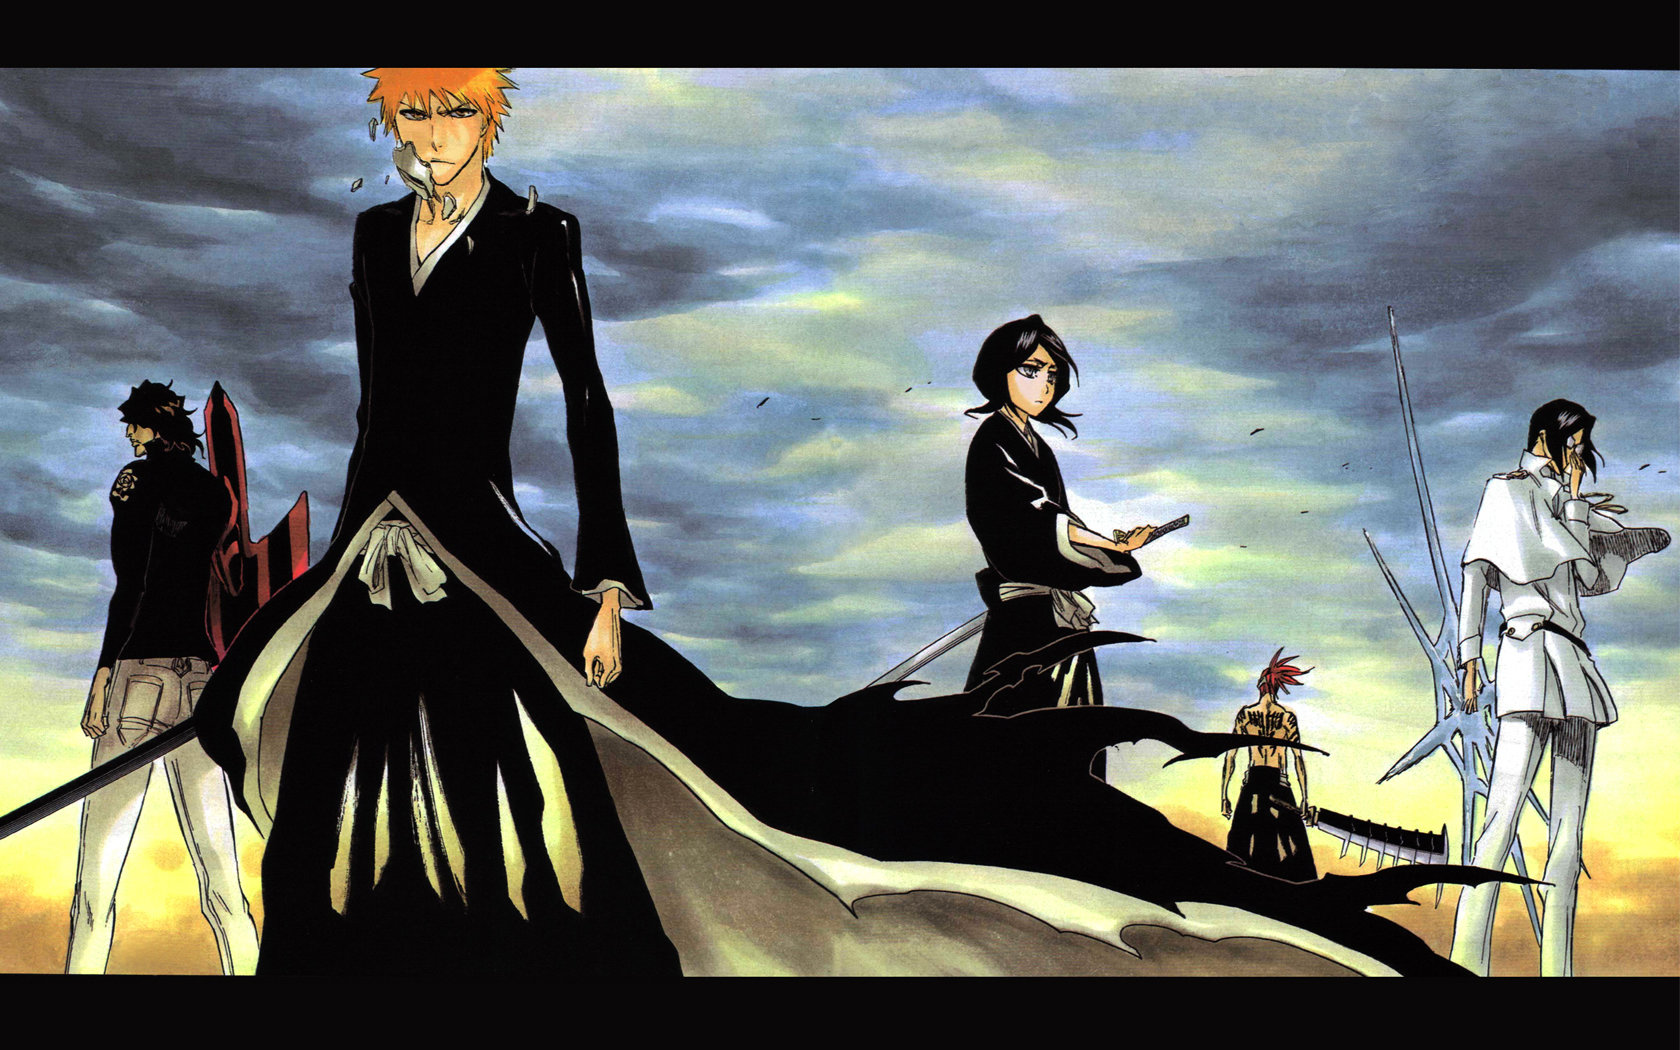 Download hd 1680x1050 Bleach PC wallpaper ID:416633 for free